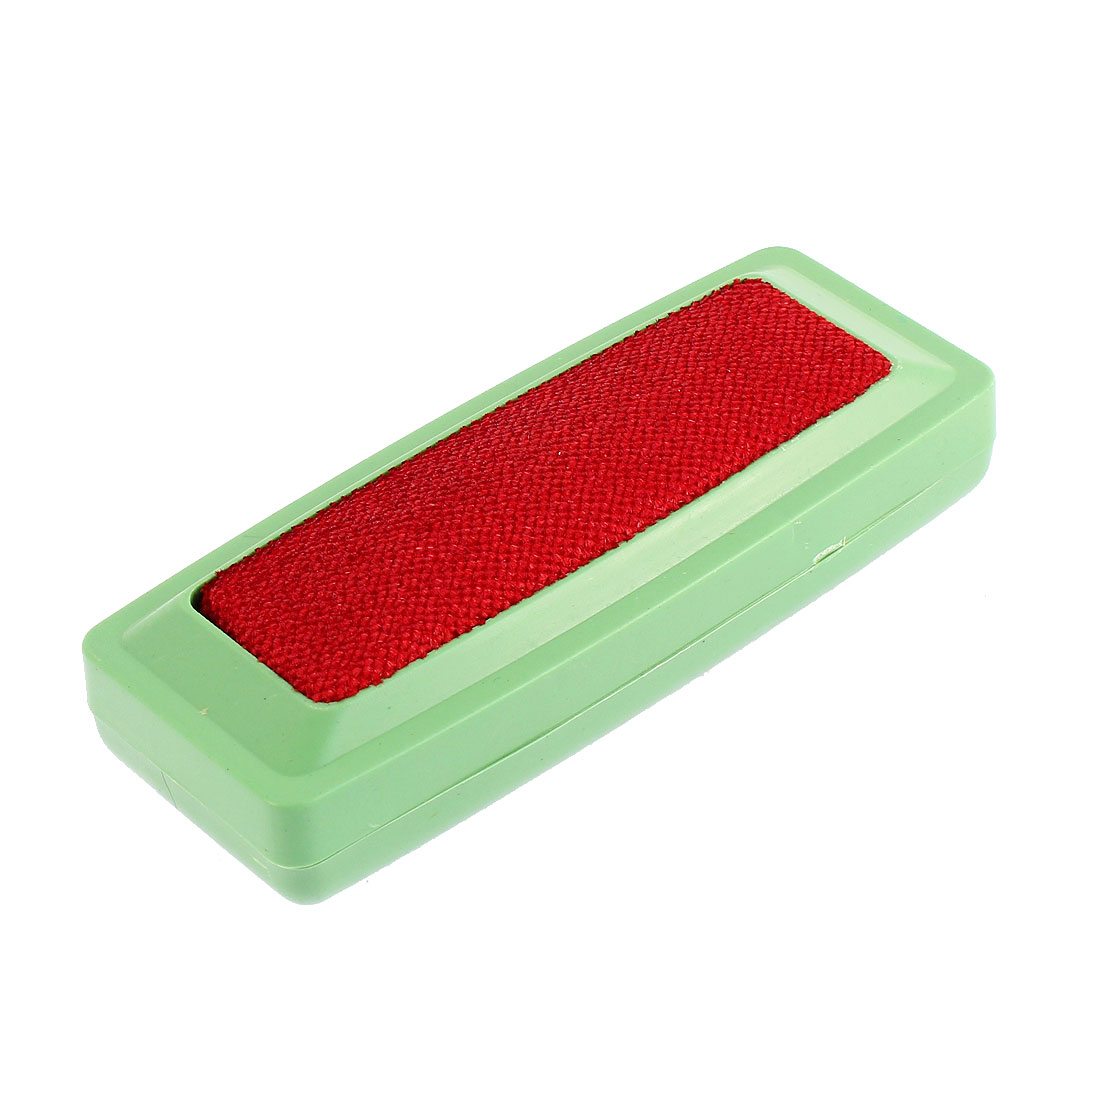 Clothes Bedspread Carpet Lint Remover Brush Red Green